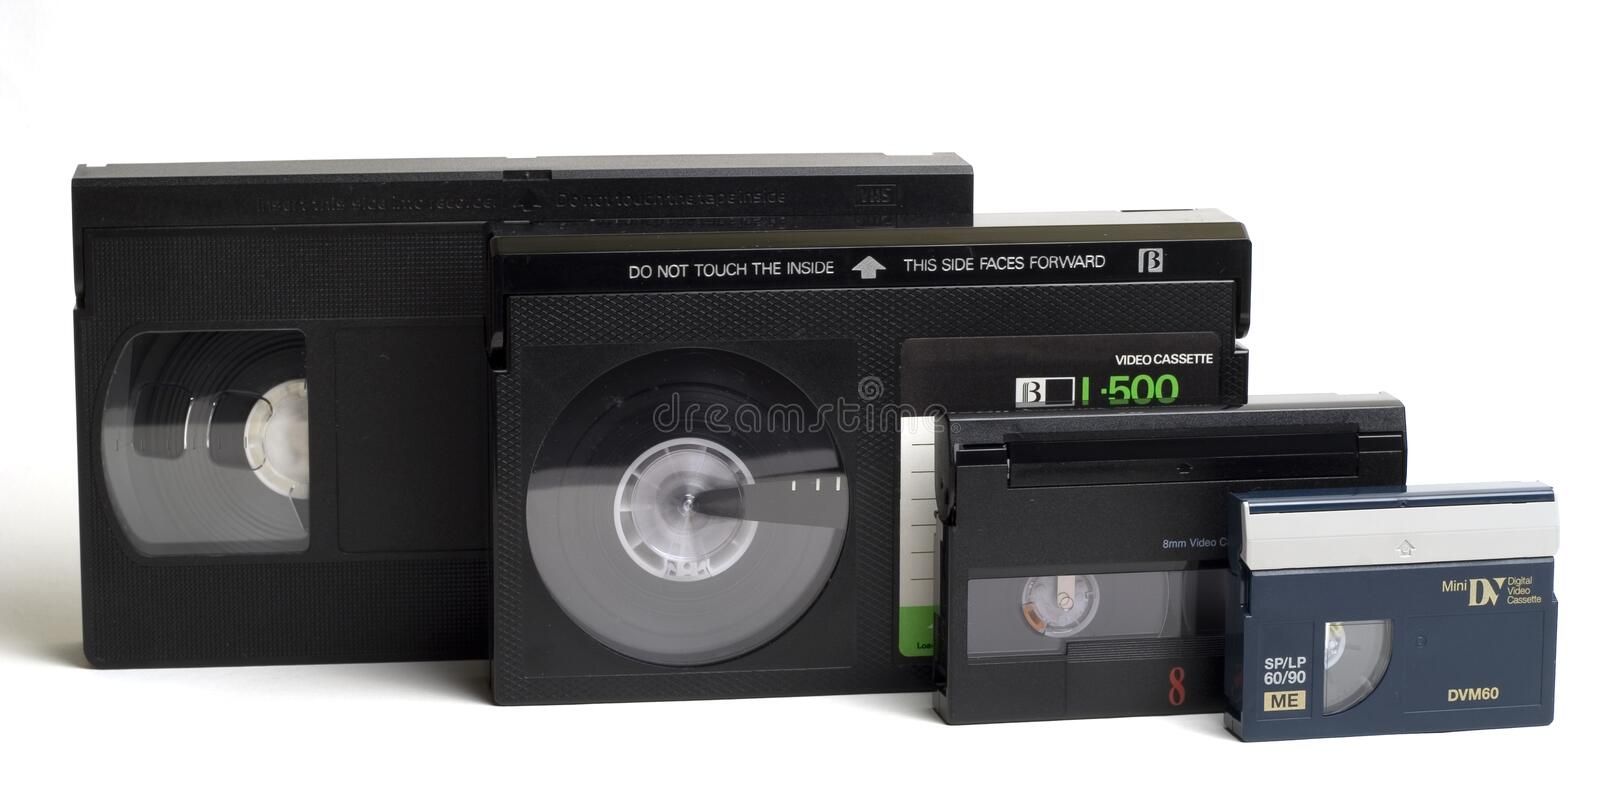 Download Video Cassettes stock image. Image of digital, sorted, betamax - 308367